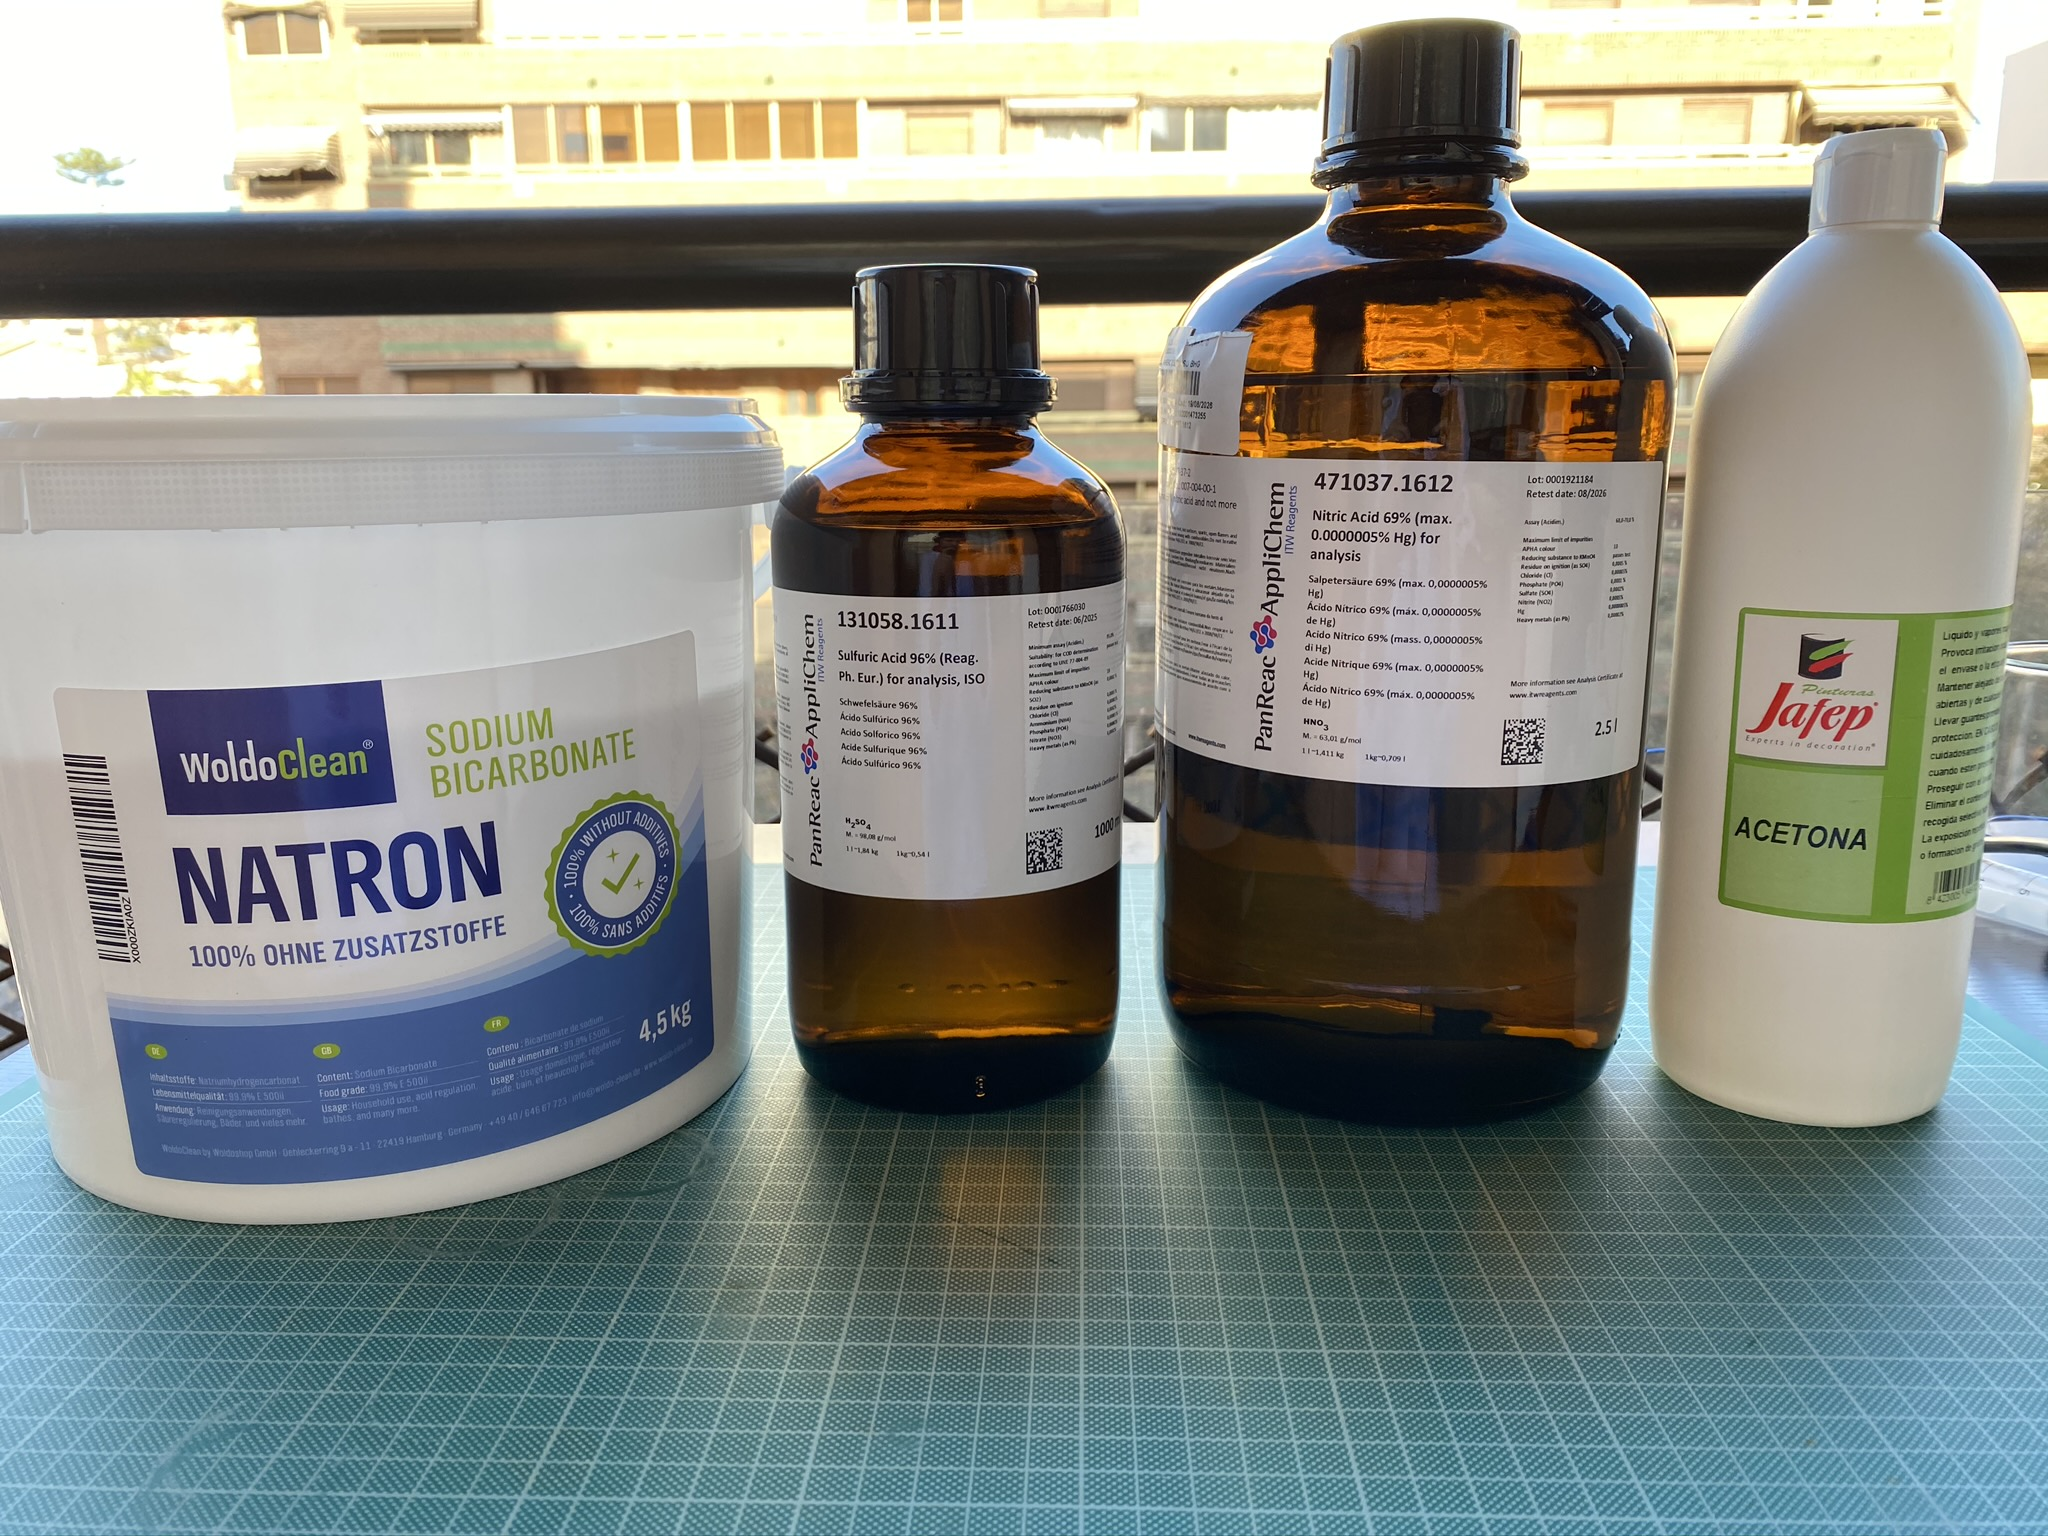 Both bottles of acid used during my experiments